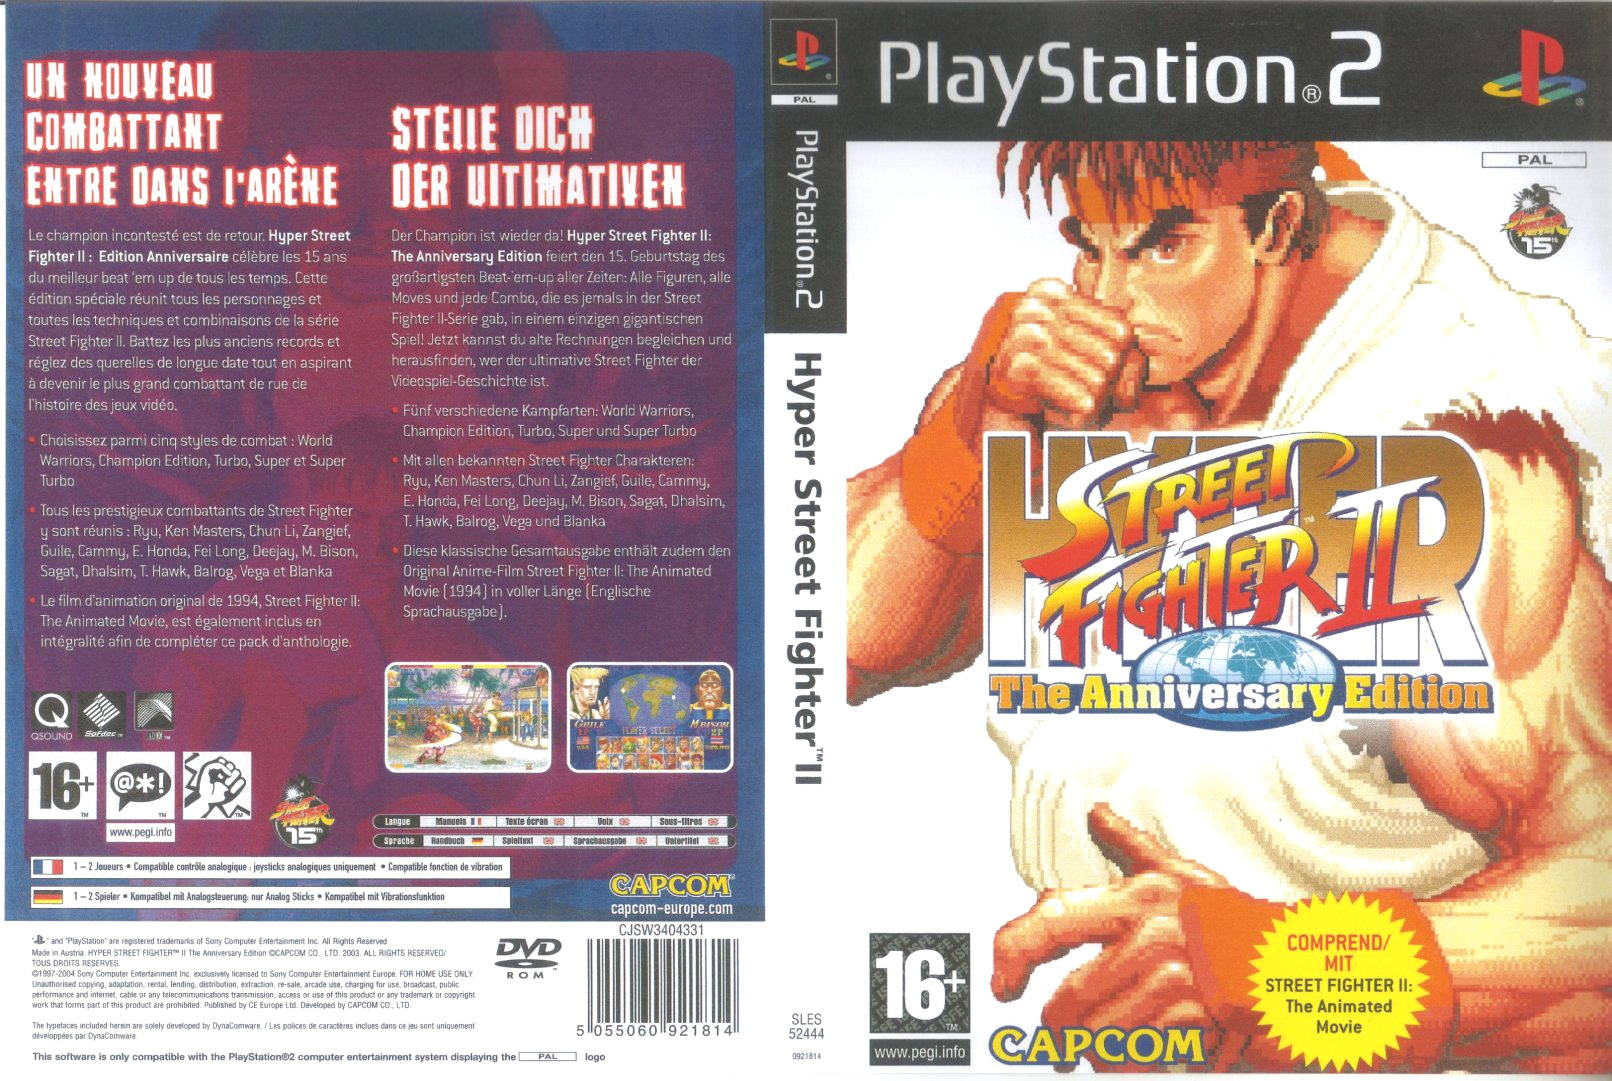 hyper street fighter 2 d | Playstation 2 Covers | Cover Century